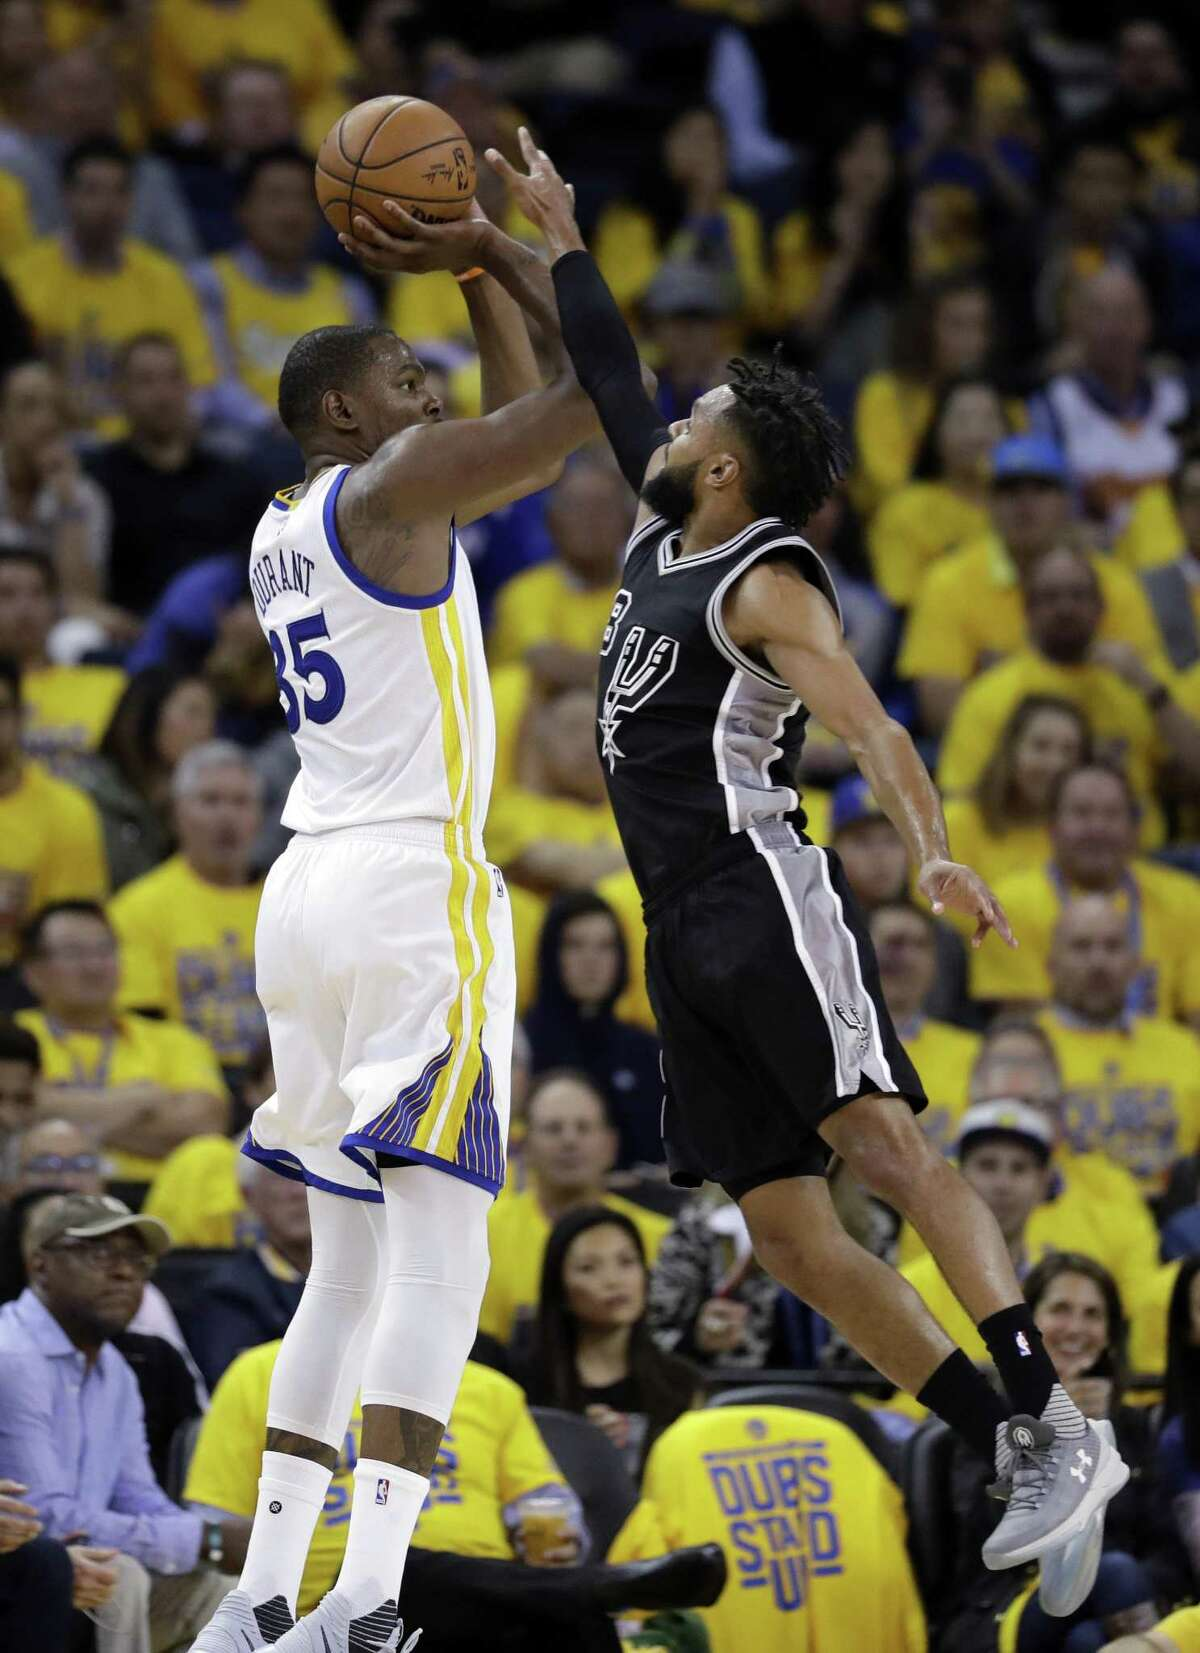 Golden State Warriors' Kevin Durant shoots over the Spurs' Patty Mills during the second half of Game 2 of the Western Conference finals on May 16, 2017, in Oakland, Calif.